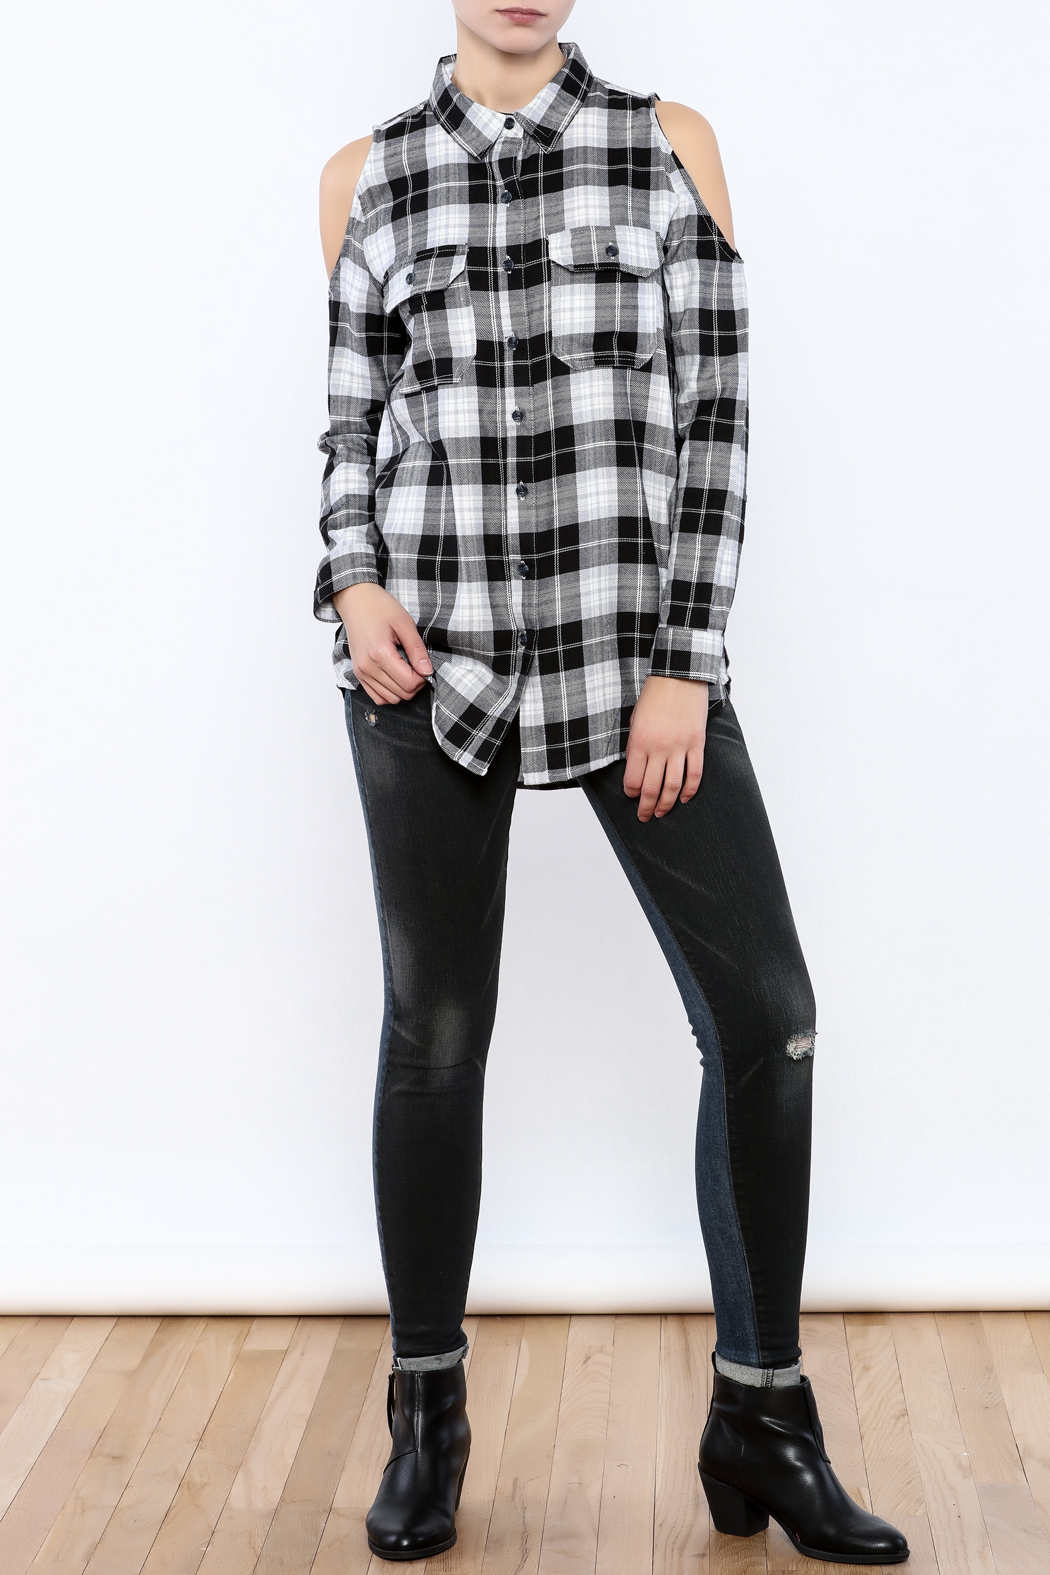 Velvet Heart Finely Cold Shoulder Plaid Top - Front Full Image